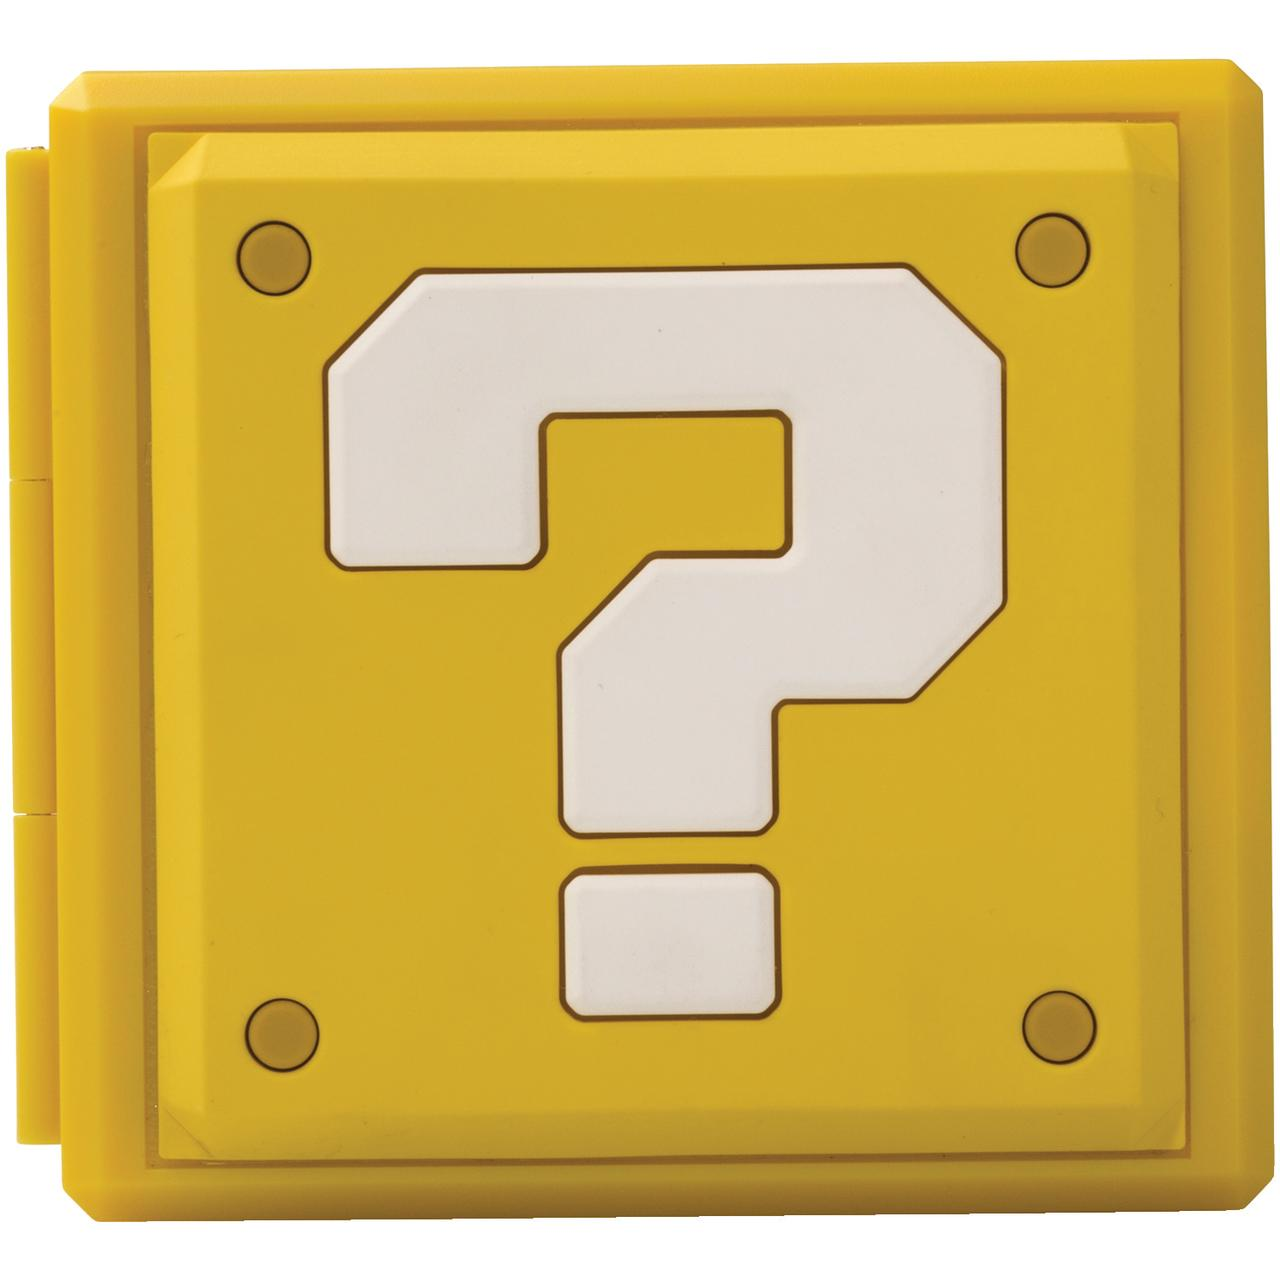 PowerA Game Card Case for Nintendo Switch - Question Block (1502668-01)